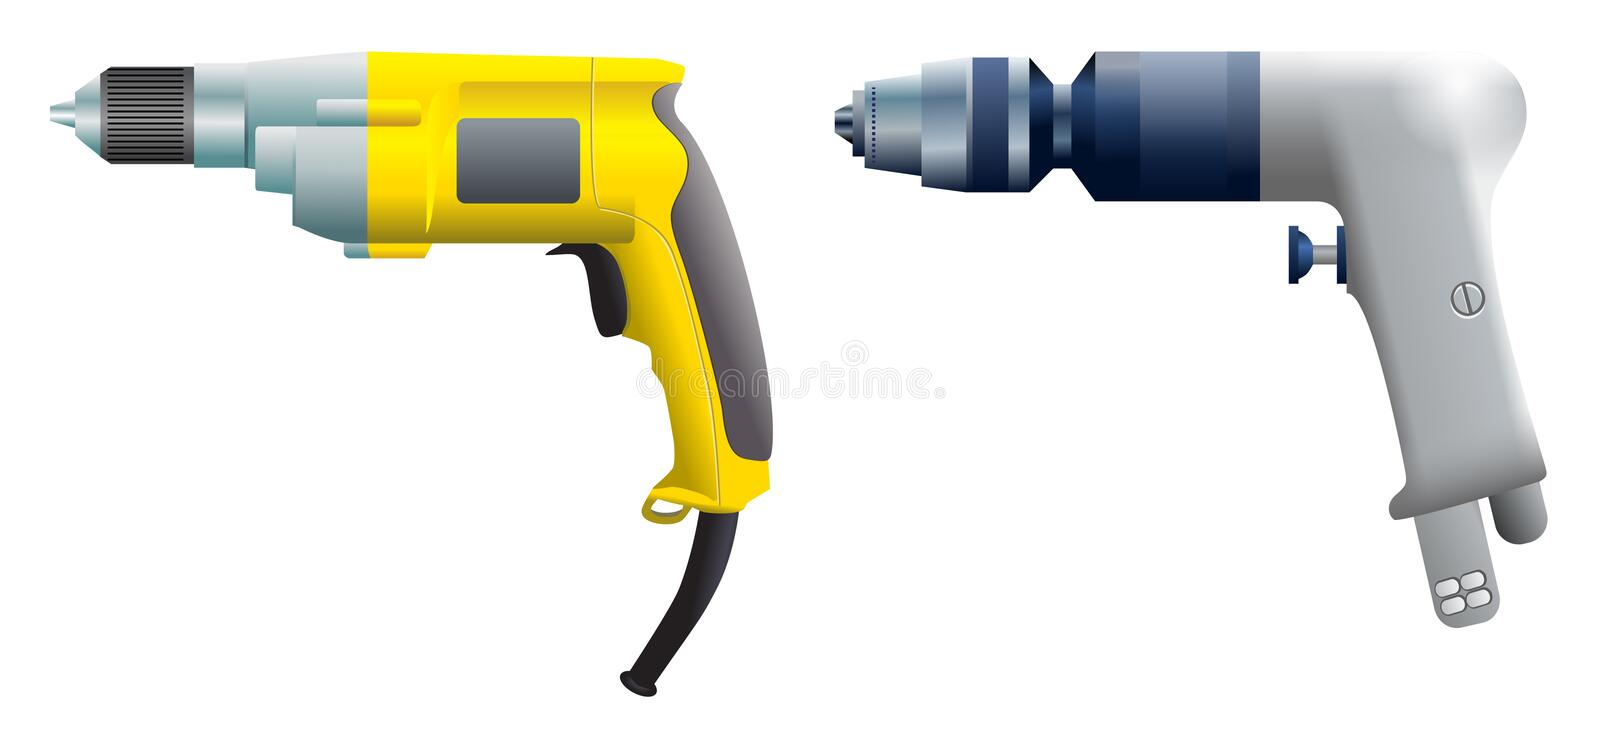 Download Drill And Screwdriver Stock Photos - Image: 22425413